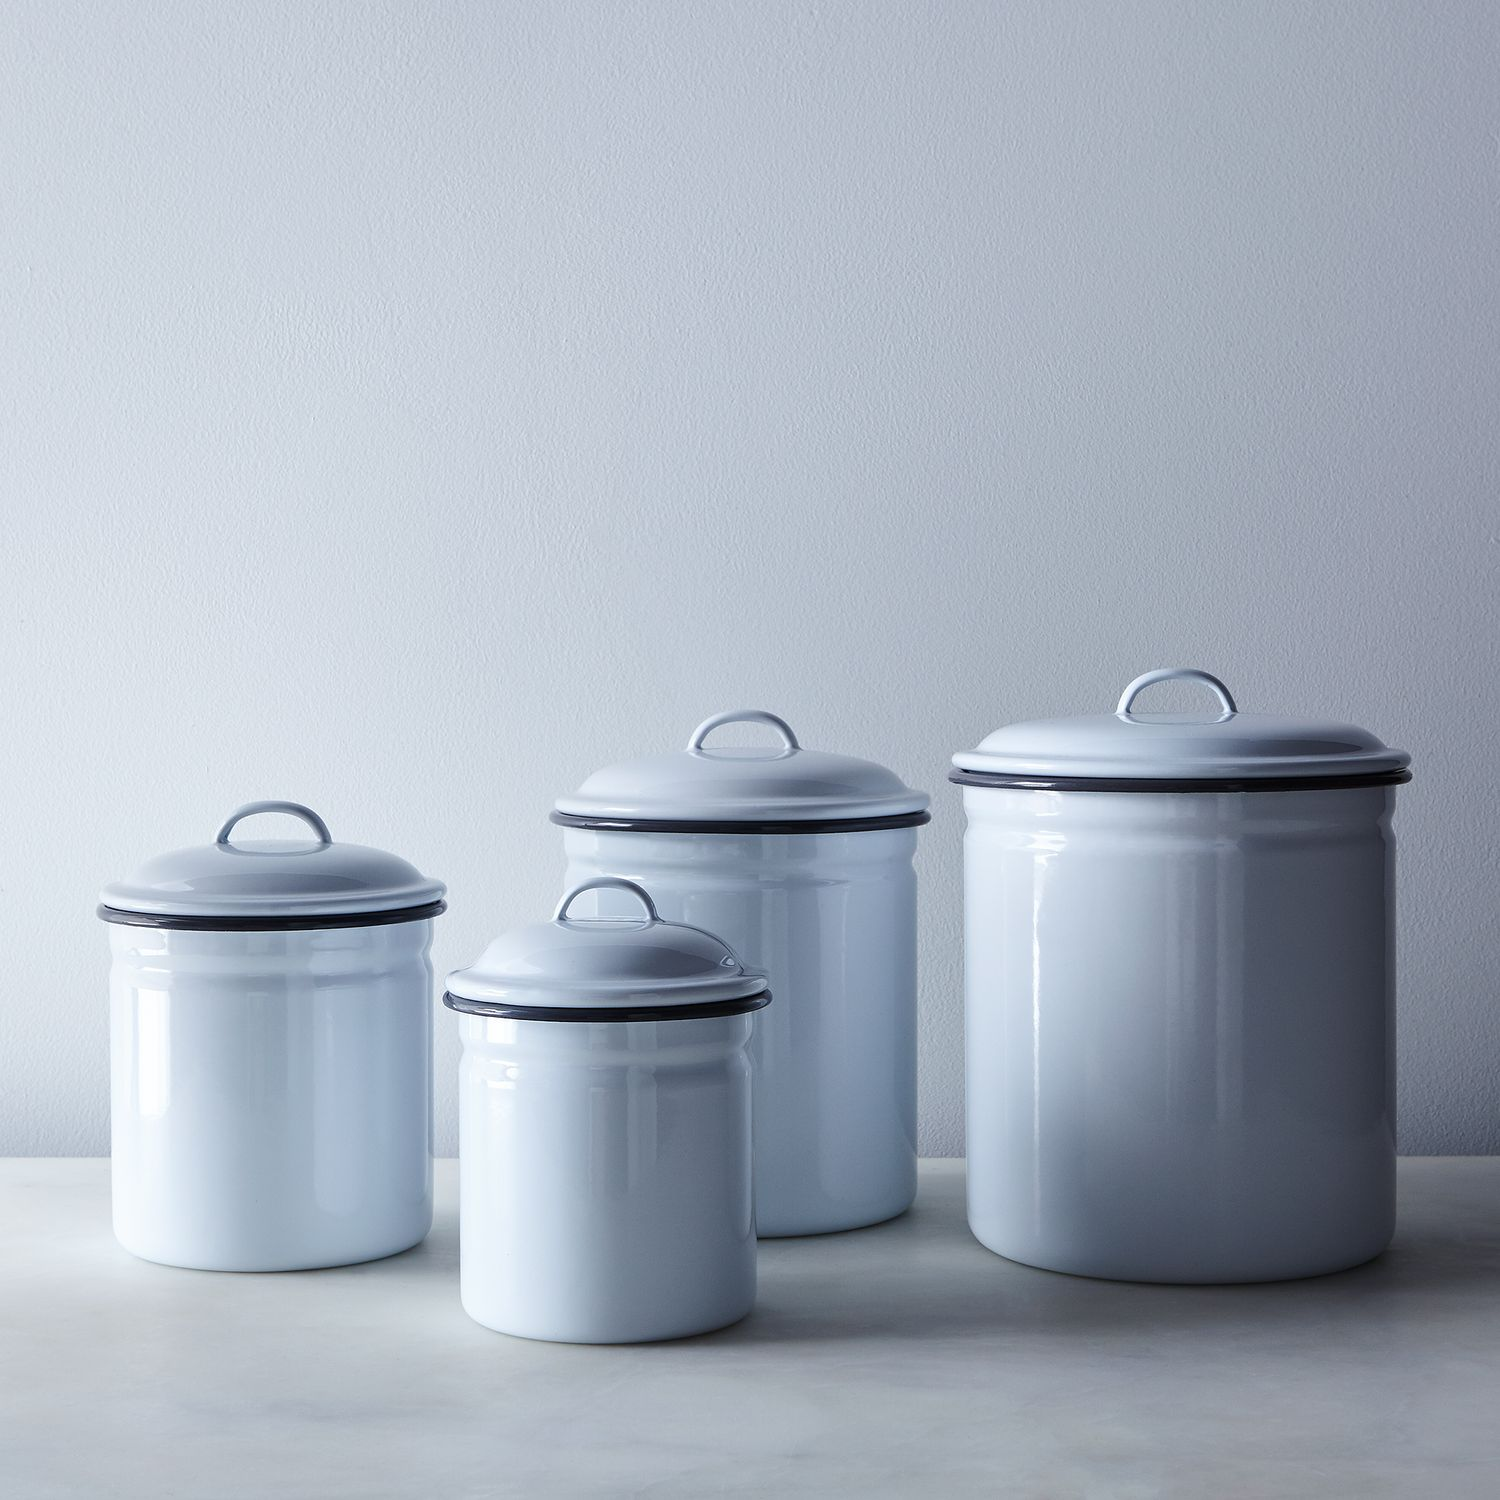 enamel kitchen canisters white grey enamel kitchen canisters set of 4 on food52 8620